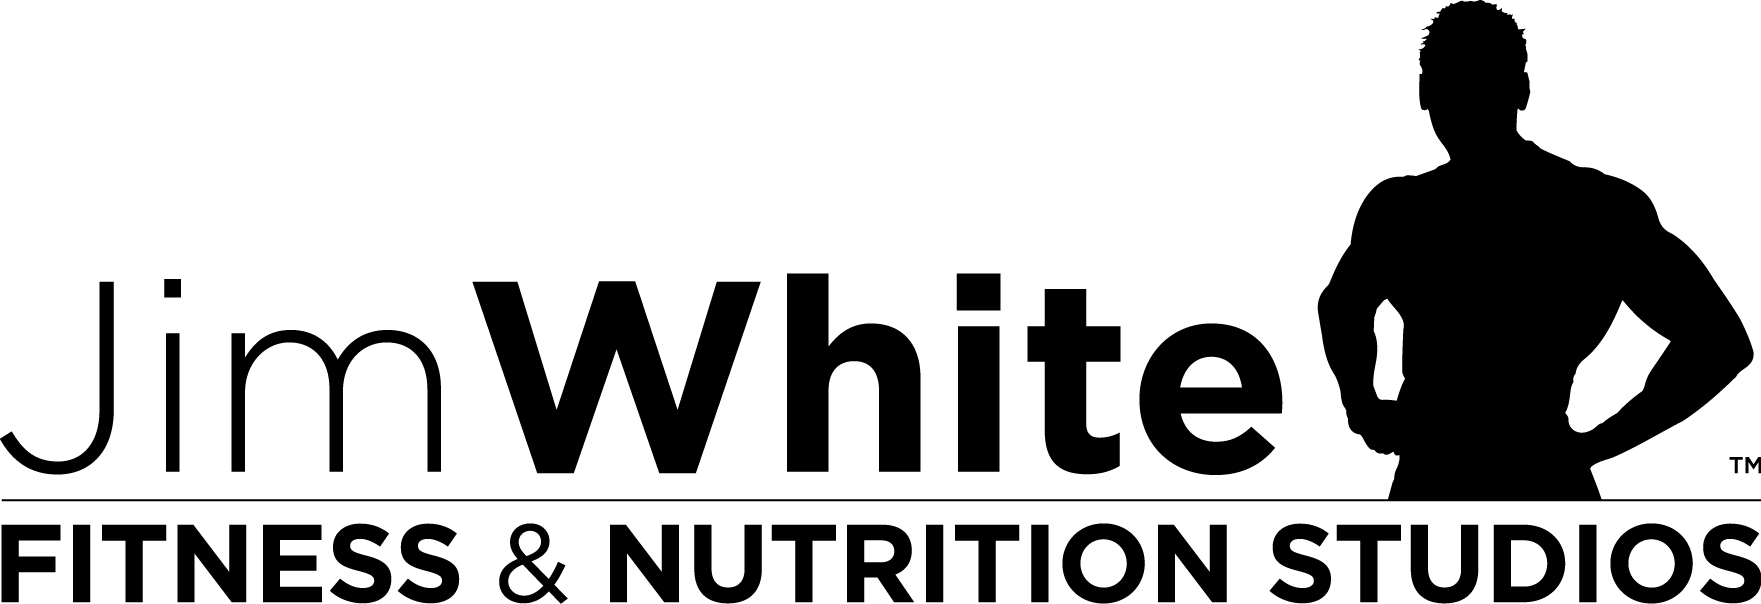 Jim White Fitness & Nutrition Studios